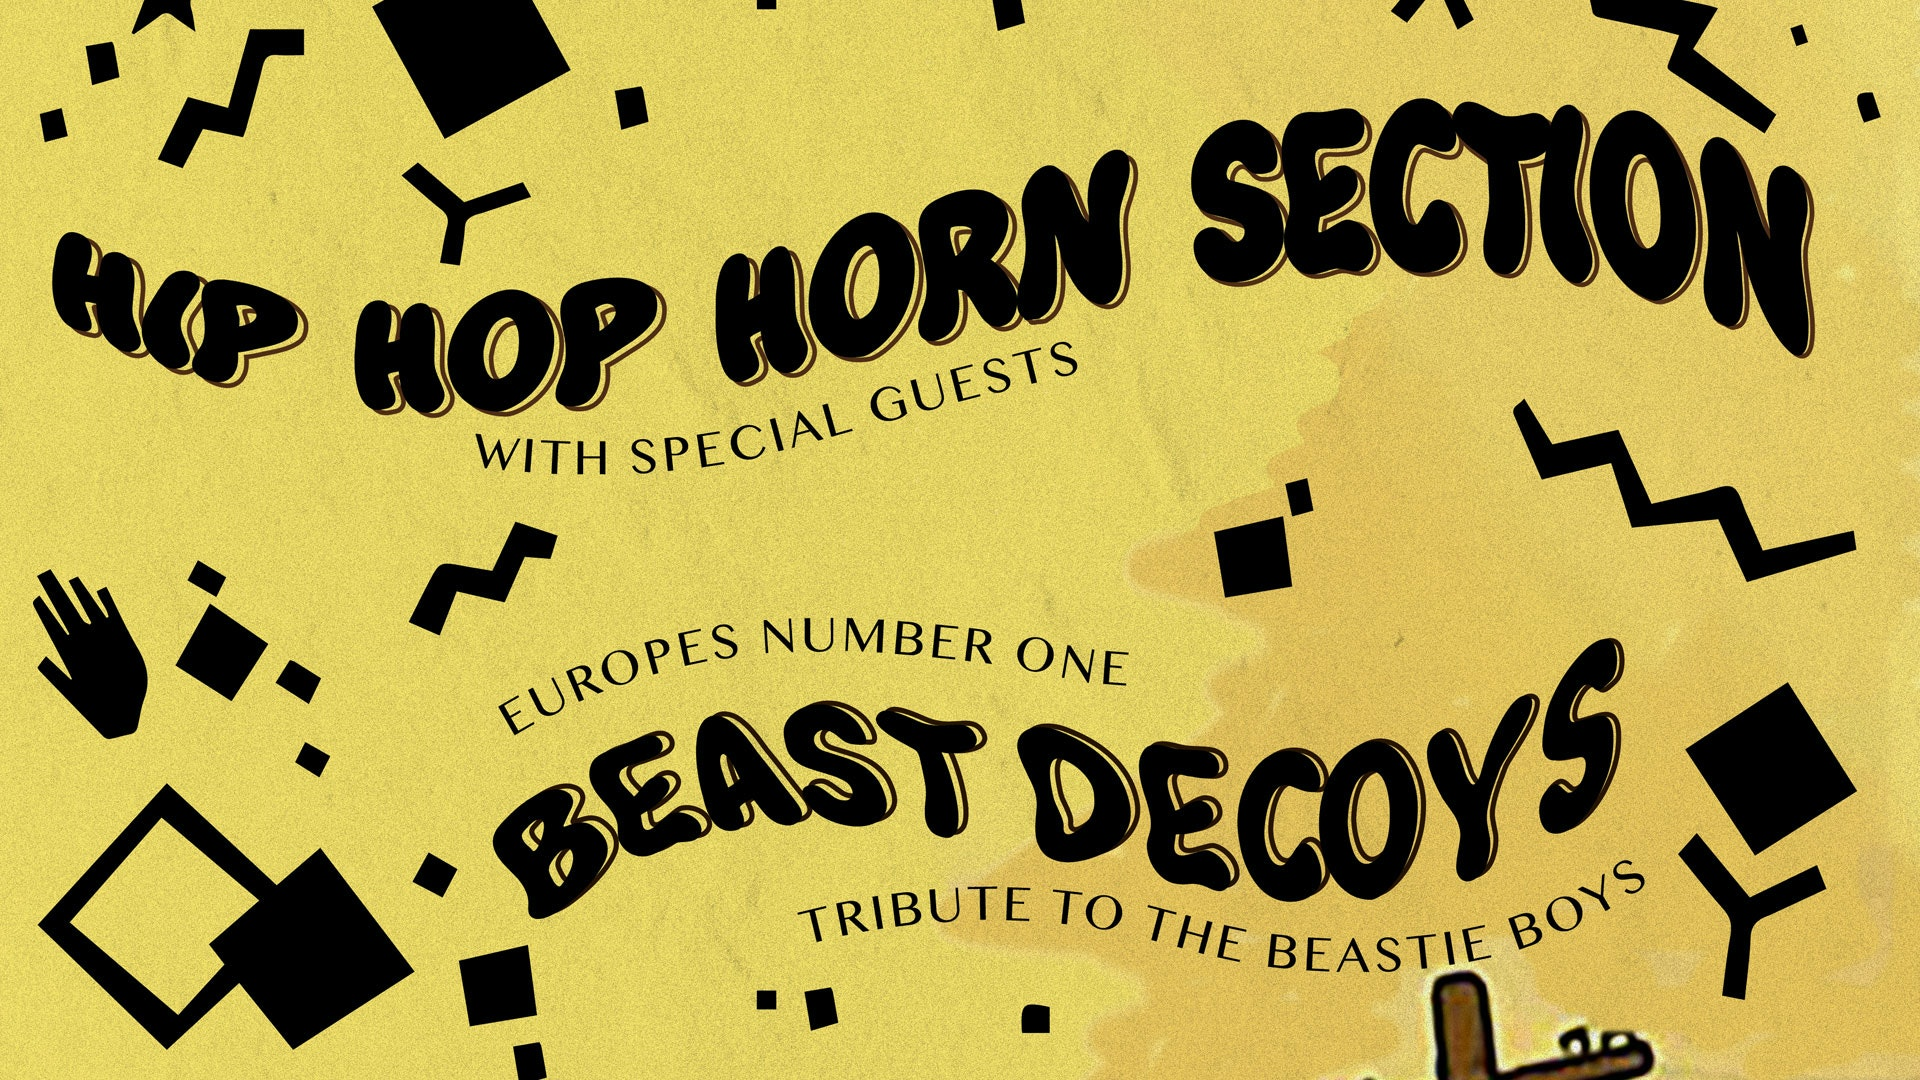 Hip Hop Horn Section + the Beast Decoys